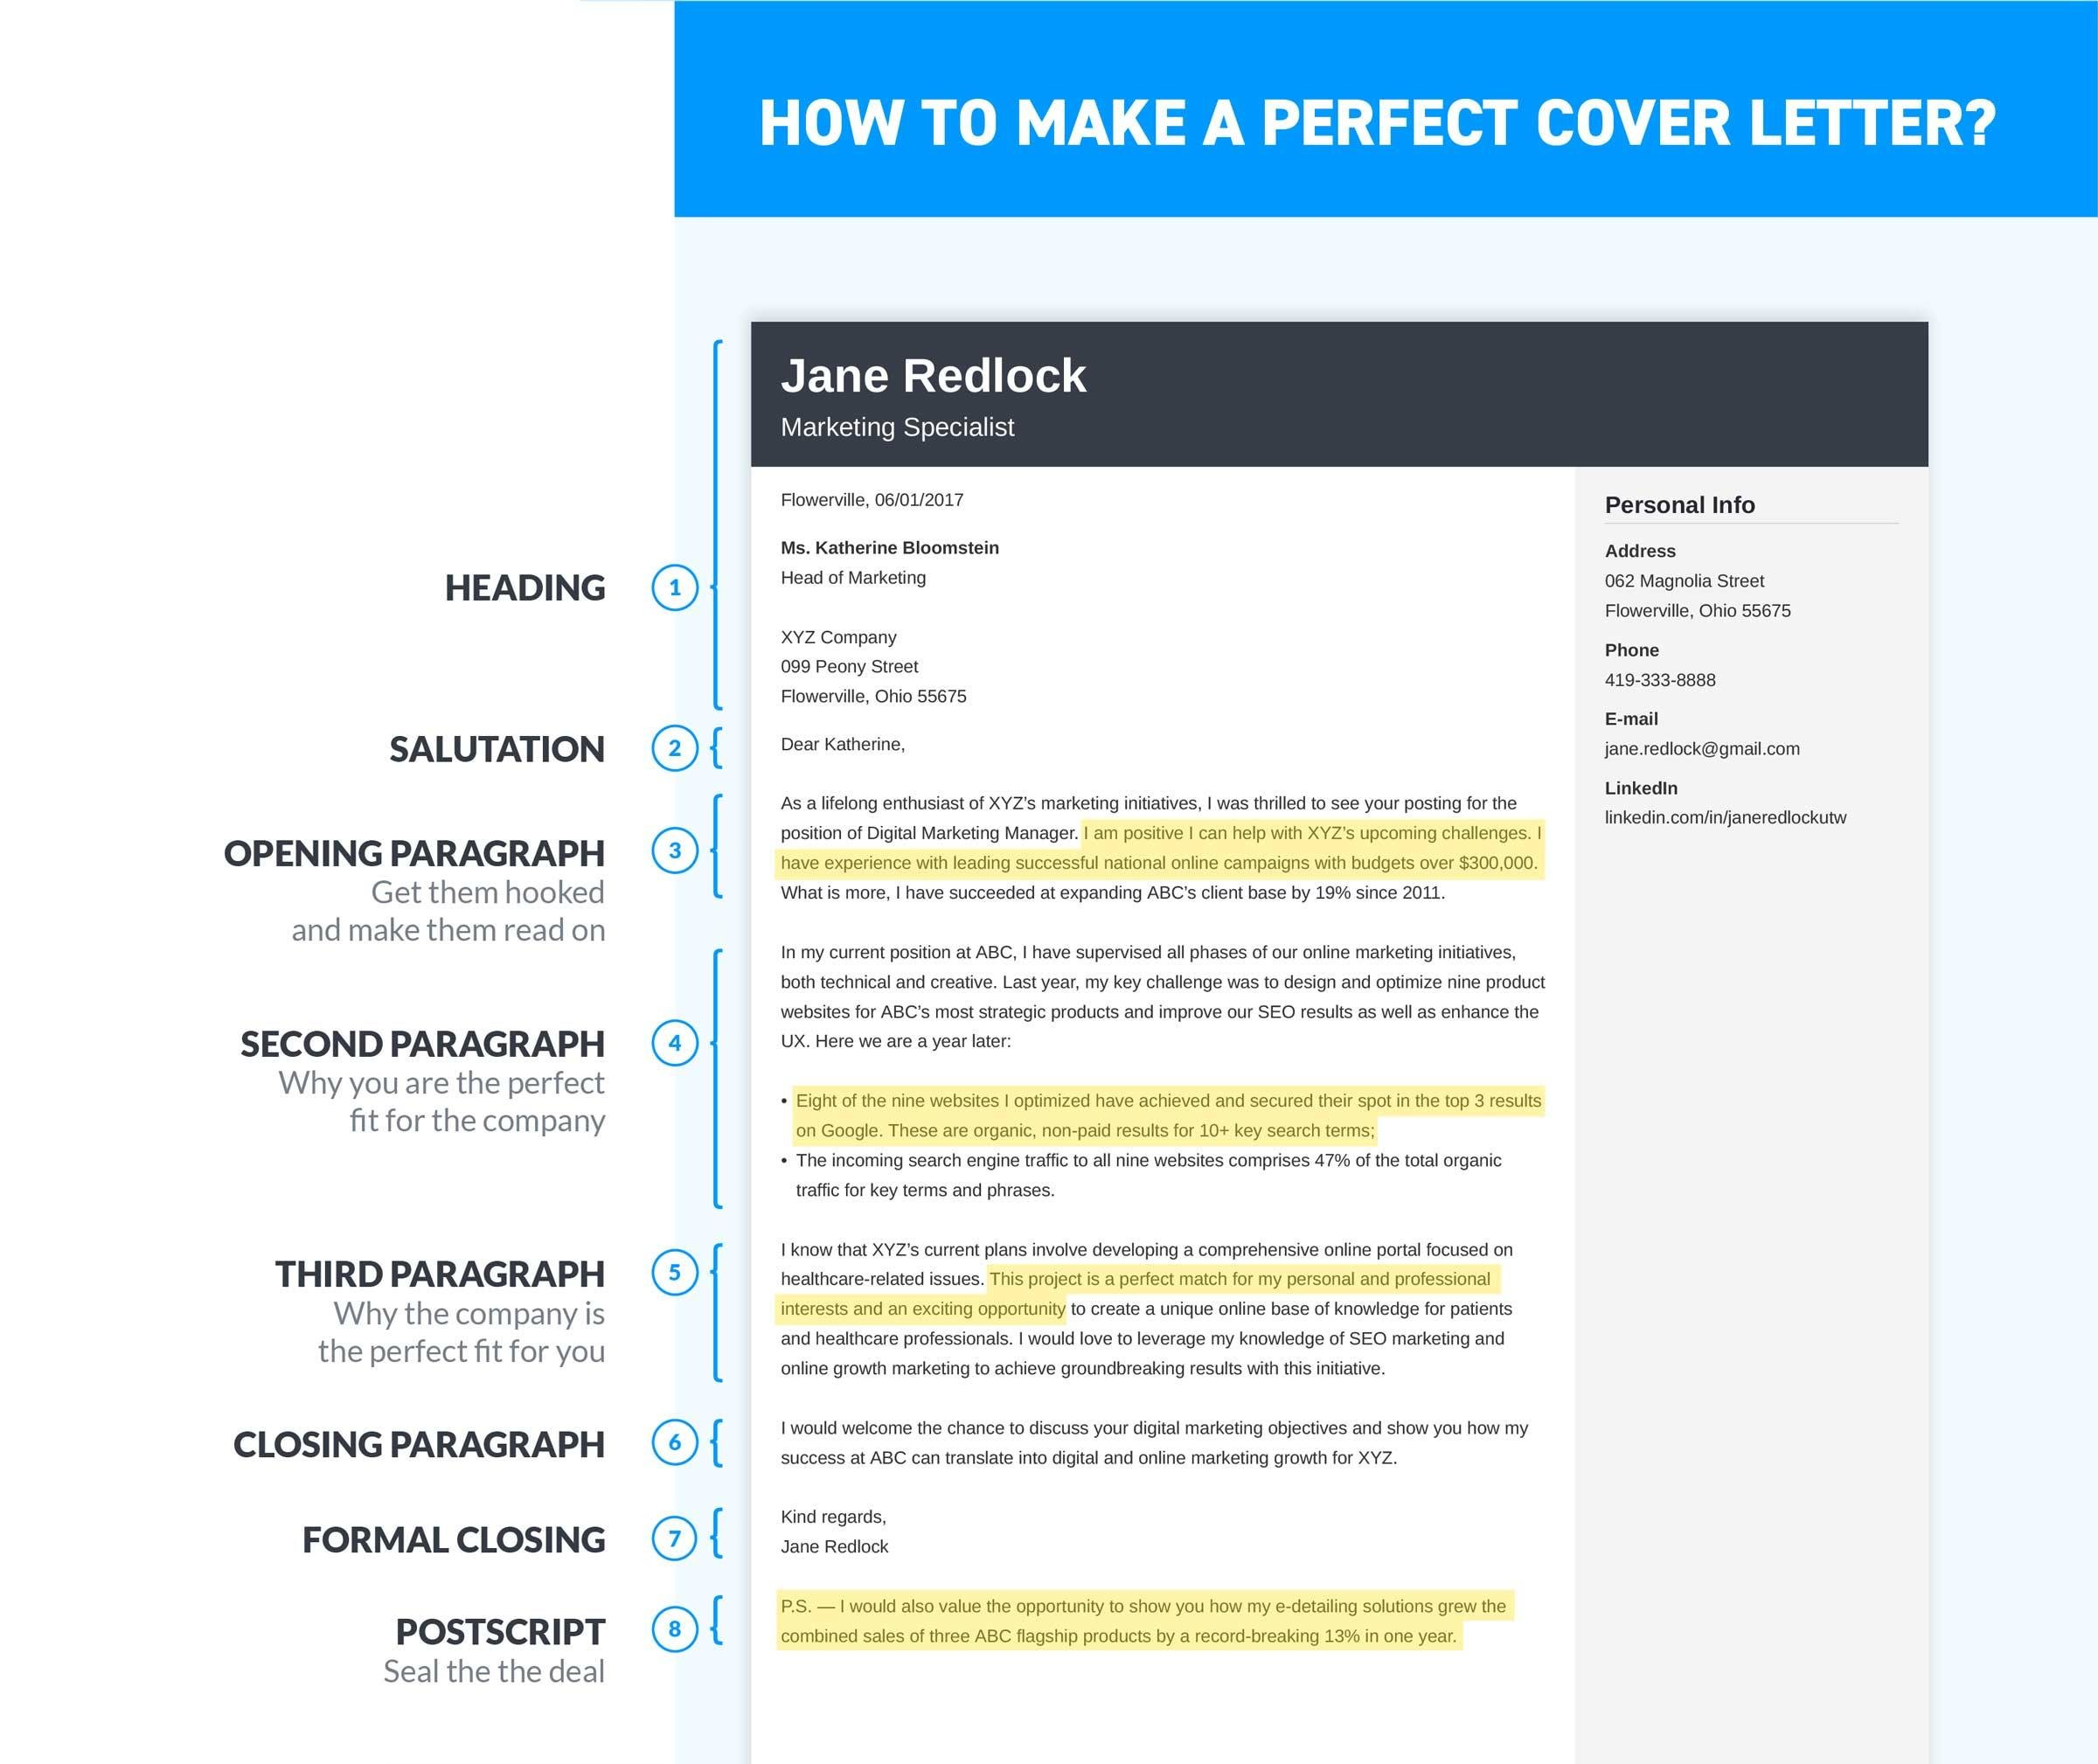 how to make a perfect cover letter infographic - How To Make A Resume And Cover Letter